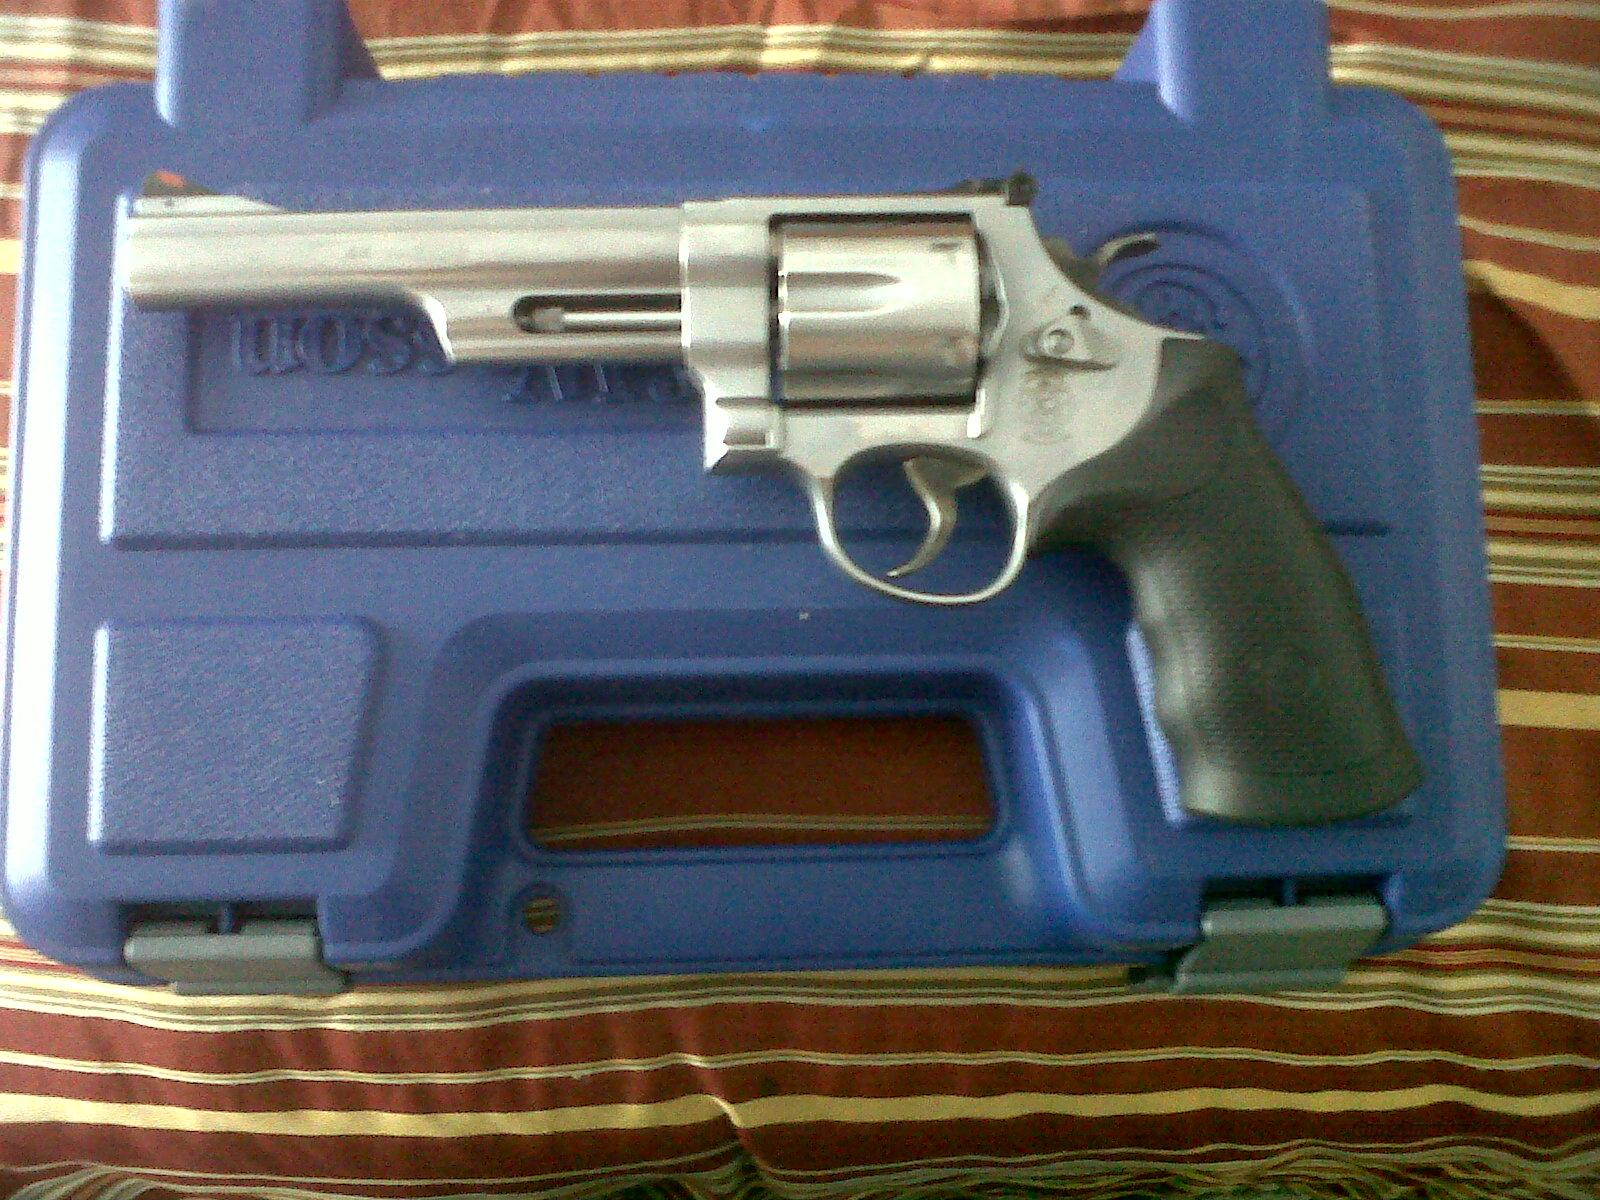 "Smith & wesson Model 629 44 magnum 6 shot stainless revolver with 6"" barrel NEW  Guns > Pistols > Smith & Wesson Revolvers > Model 629"